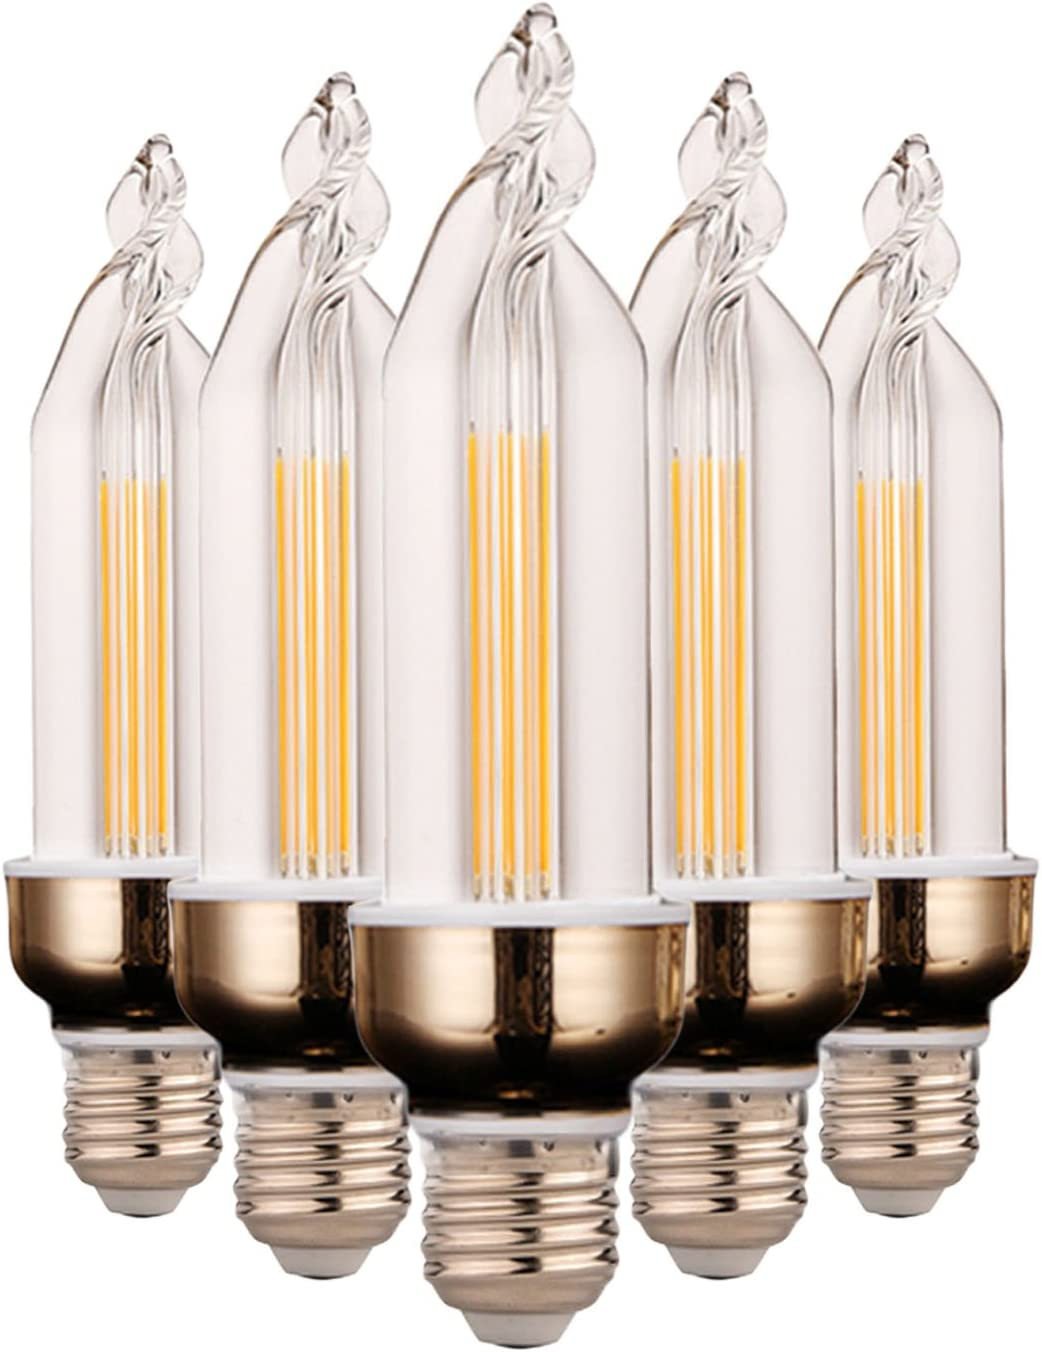 Beauty products ZHU-CL LED Max 50% OFF Corn Light Bulb Bright for Super Indoor&Outdoor,